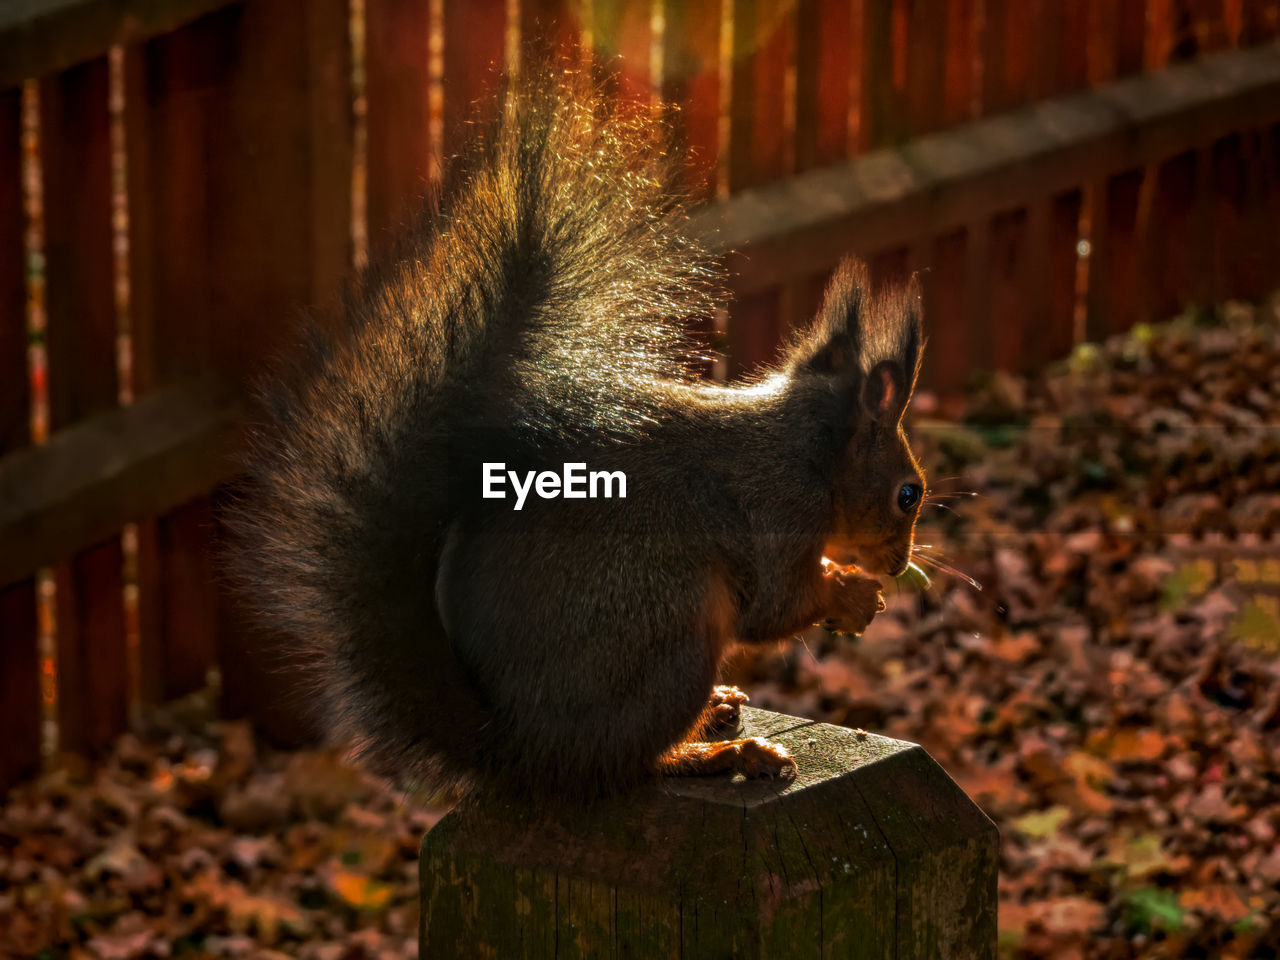 mammal, vertebrate, one animal, focus on foreground, no people, animal wildlife, nature, close-up, sitting, animals in the wild, eating, outdoors, day, looking, side view, solid, pets